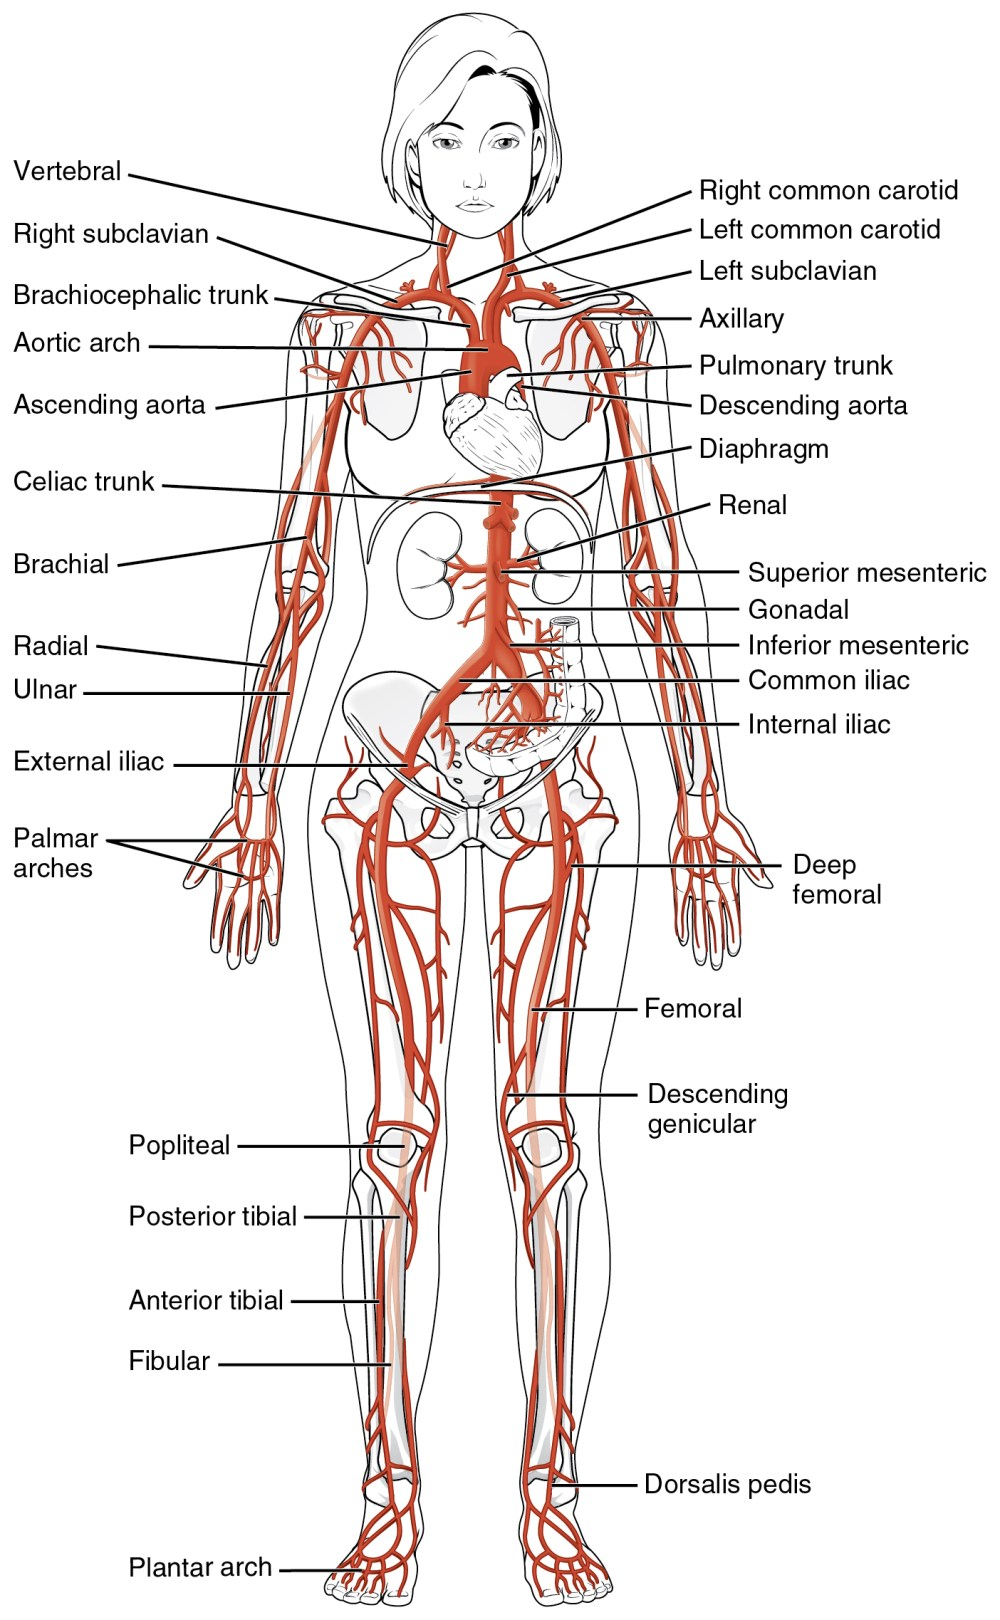 medium resolution of this diagrams shows the major arteries in the human body